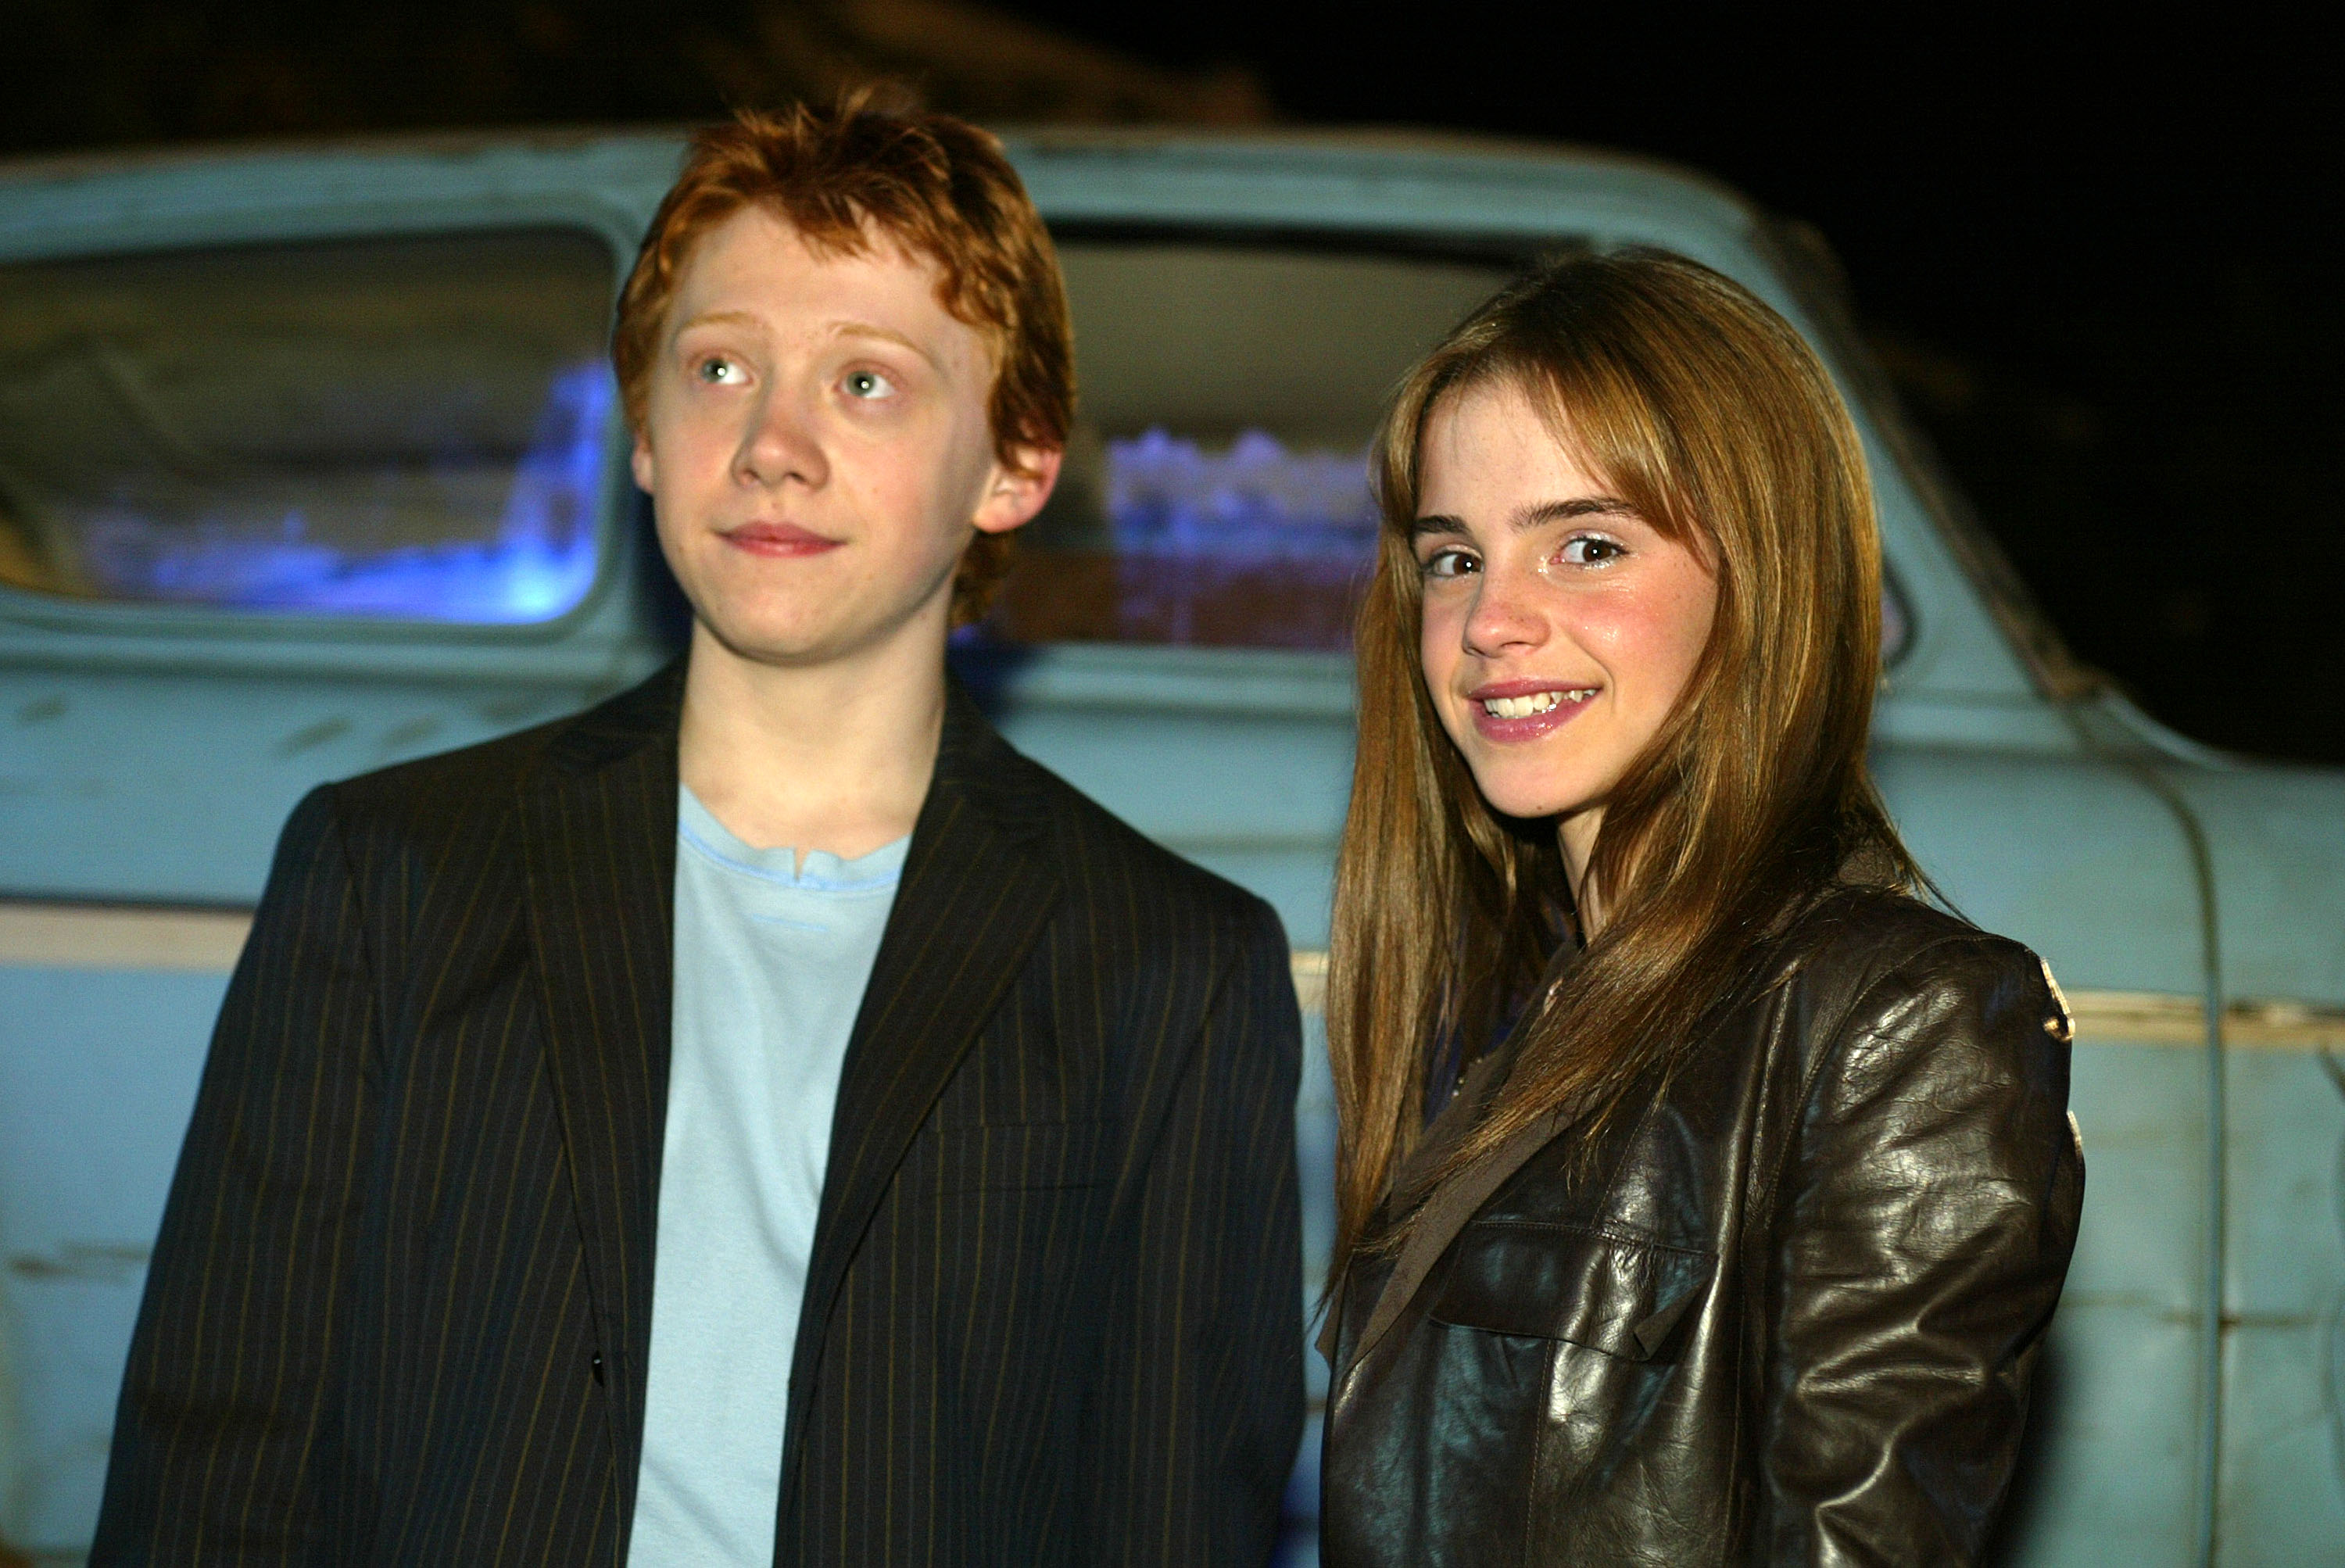 Harry potter and the chamber of secrets isn t streaming on netflix here s 7 places to watch - Harry potter chambre secrets streaming ...